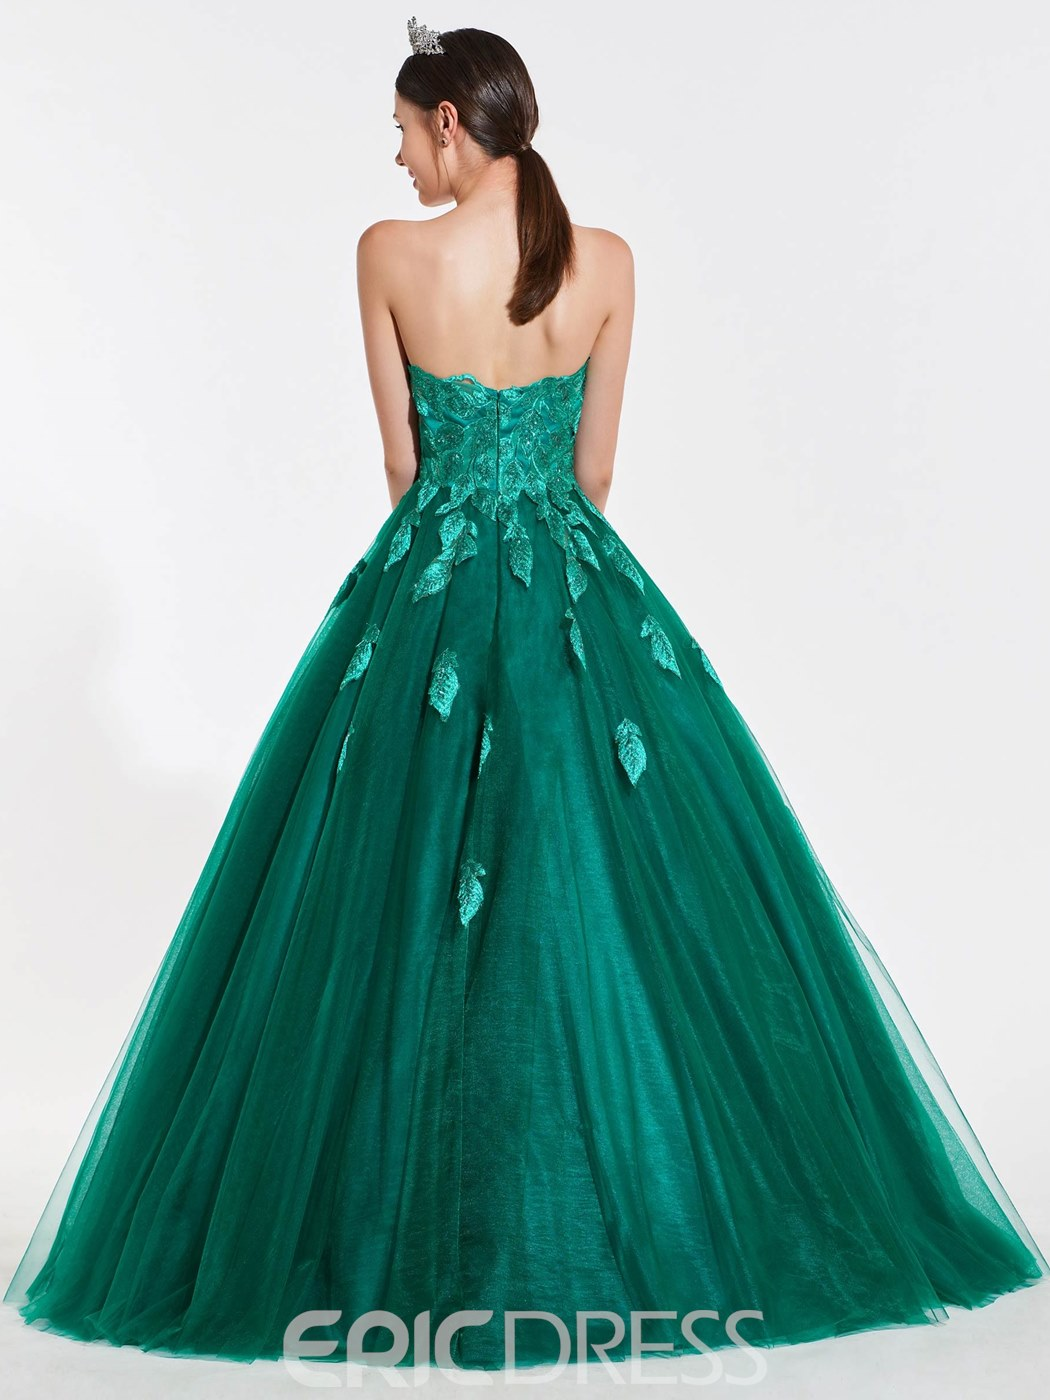 Ericdress Sweetheart Applique Lace Ball Quinceanera Gown